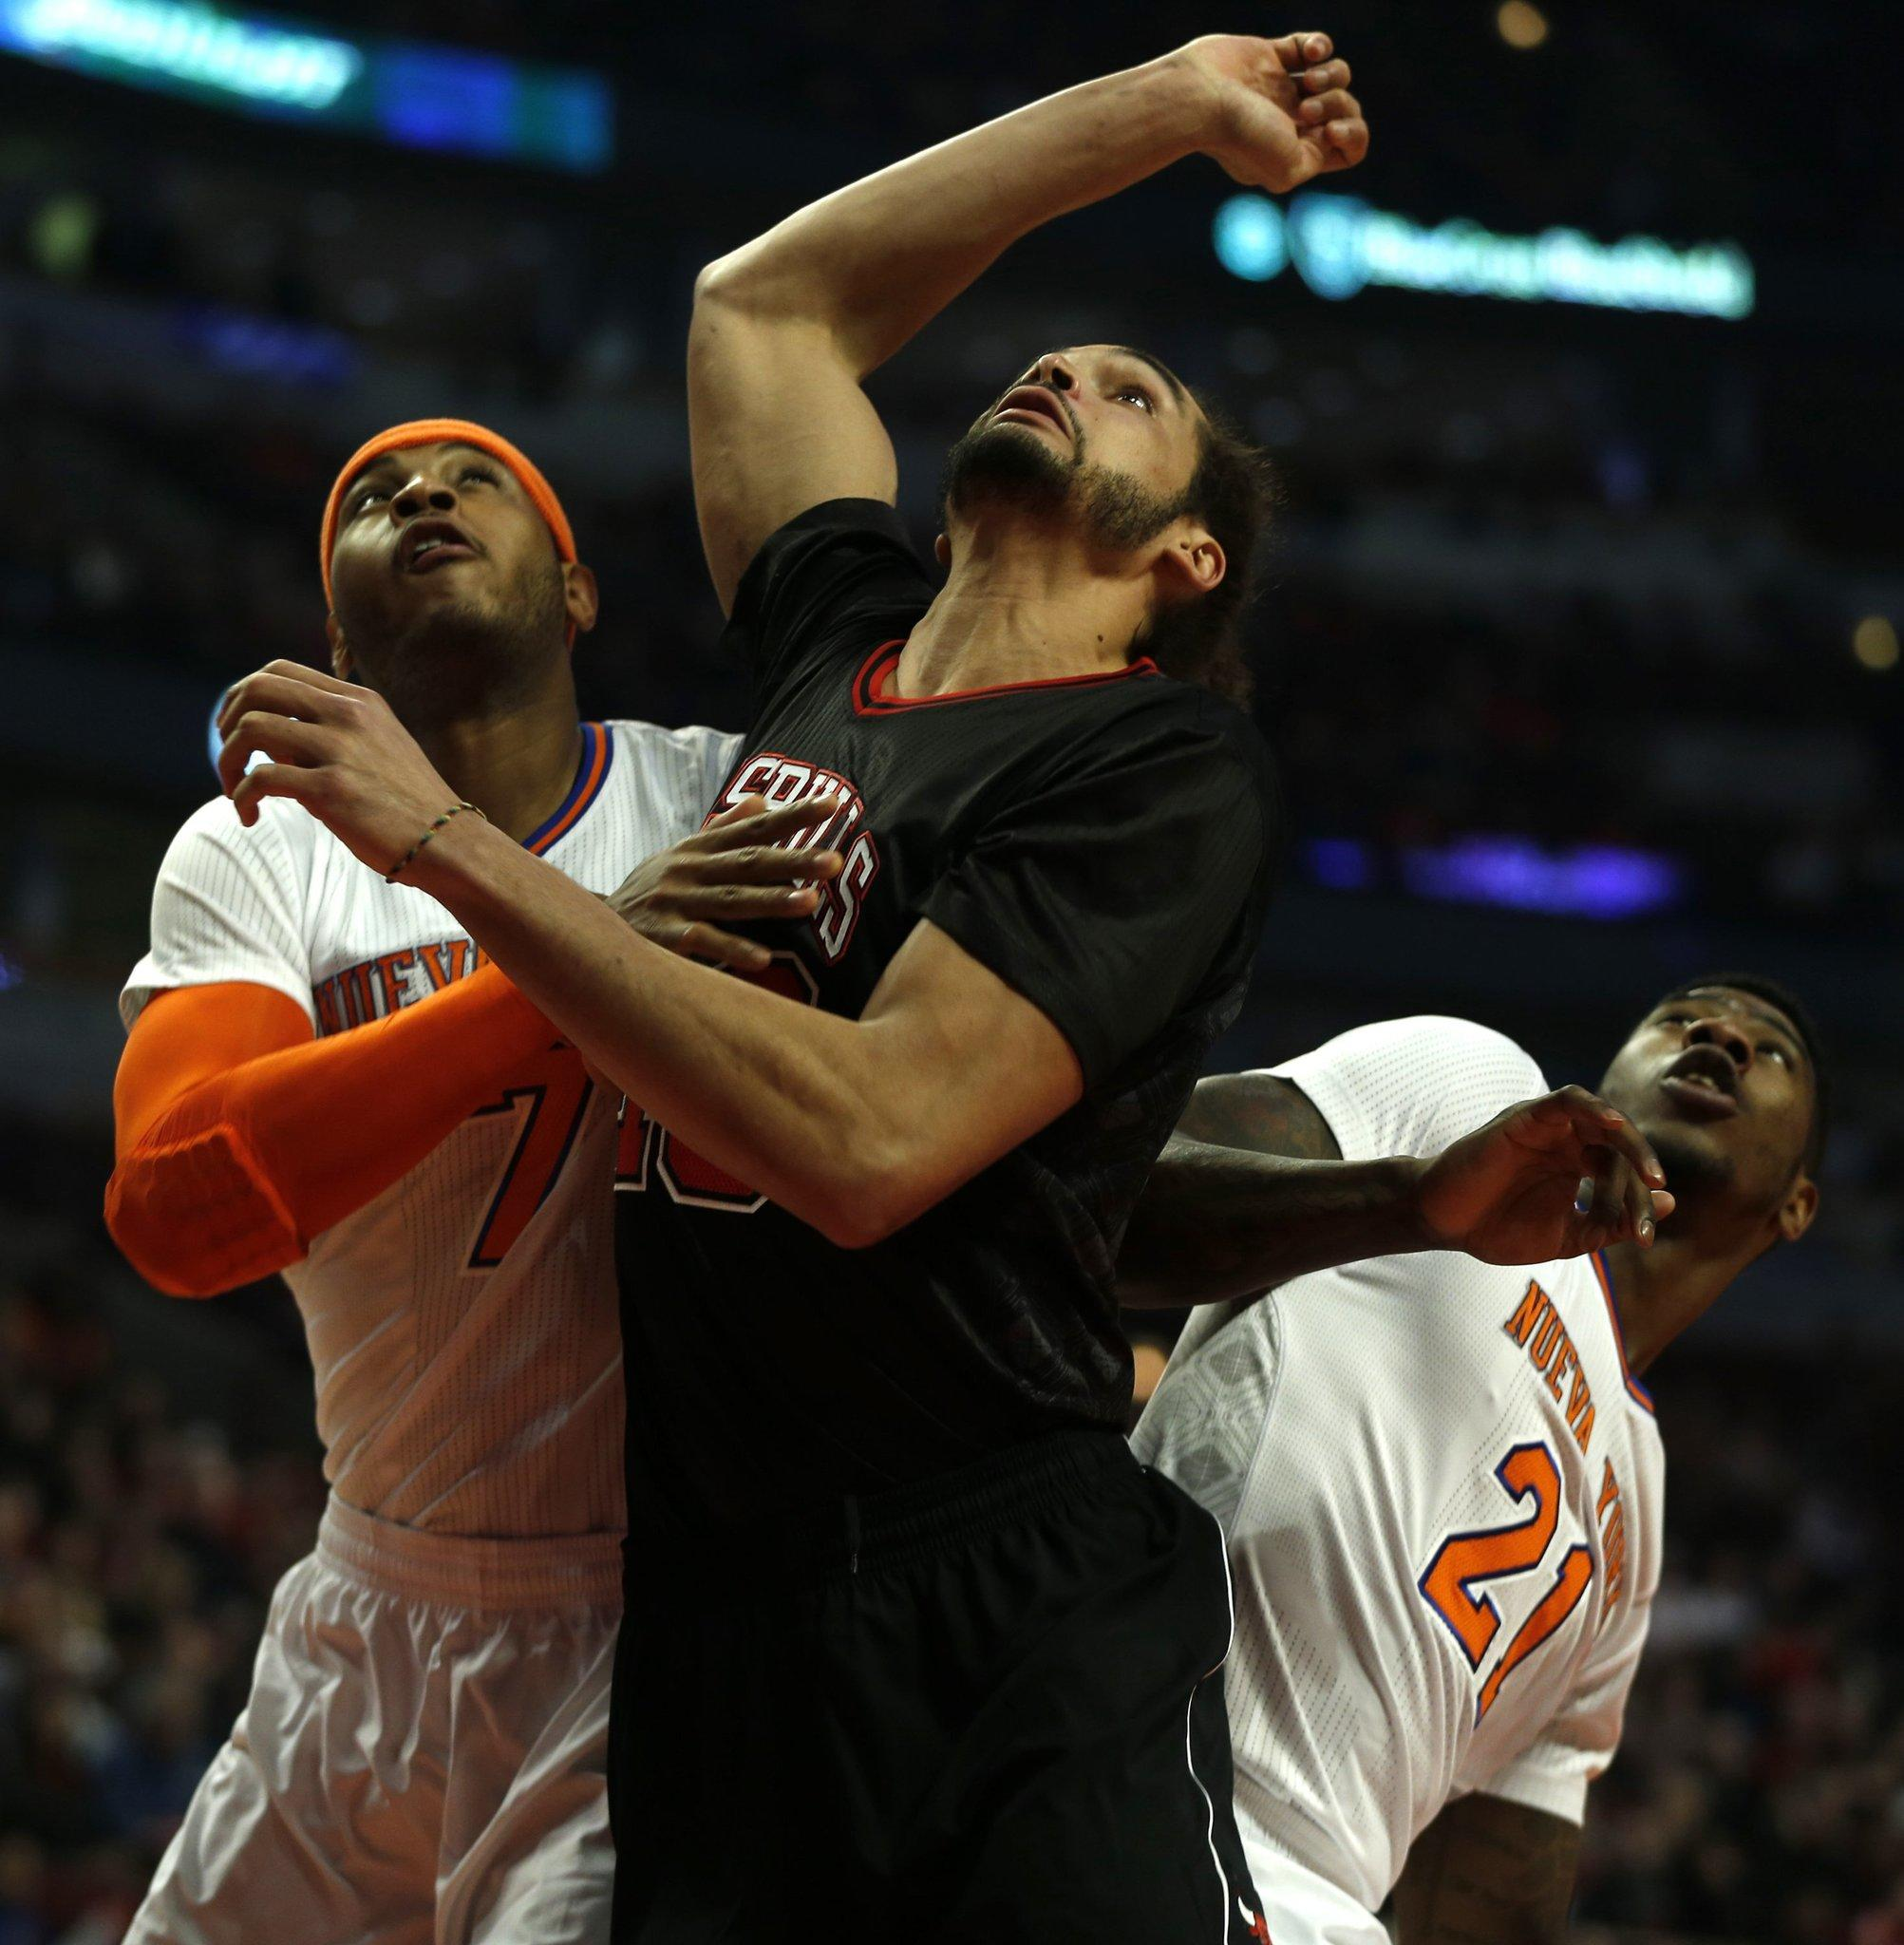 Chicago Bulls' Joakim Noah (right) vies for rebound position against New York Knicks' Carmelo Anthony on March 2.